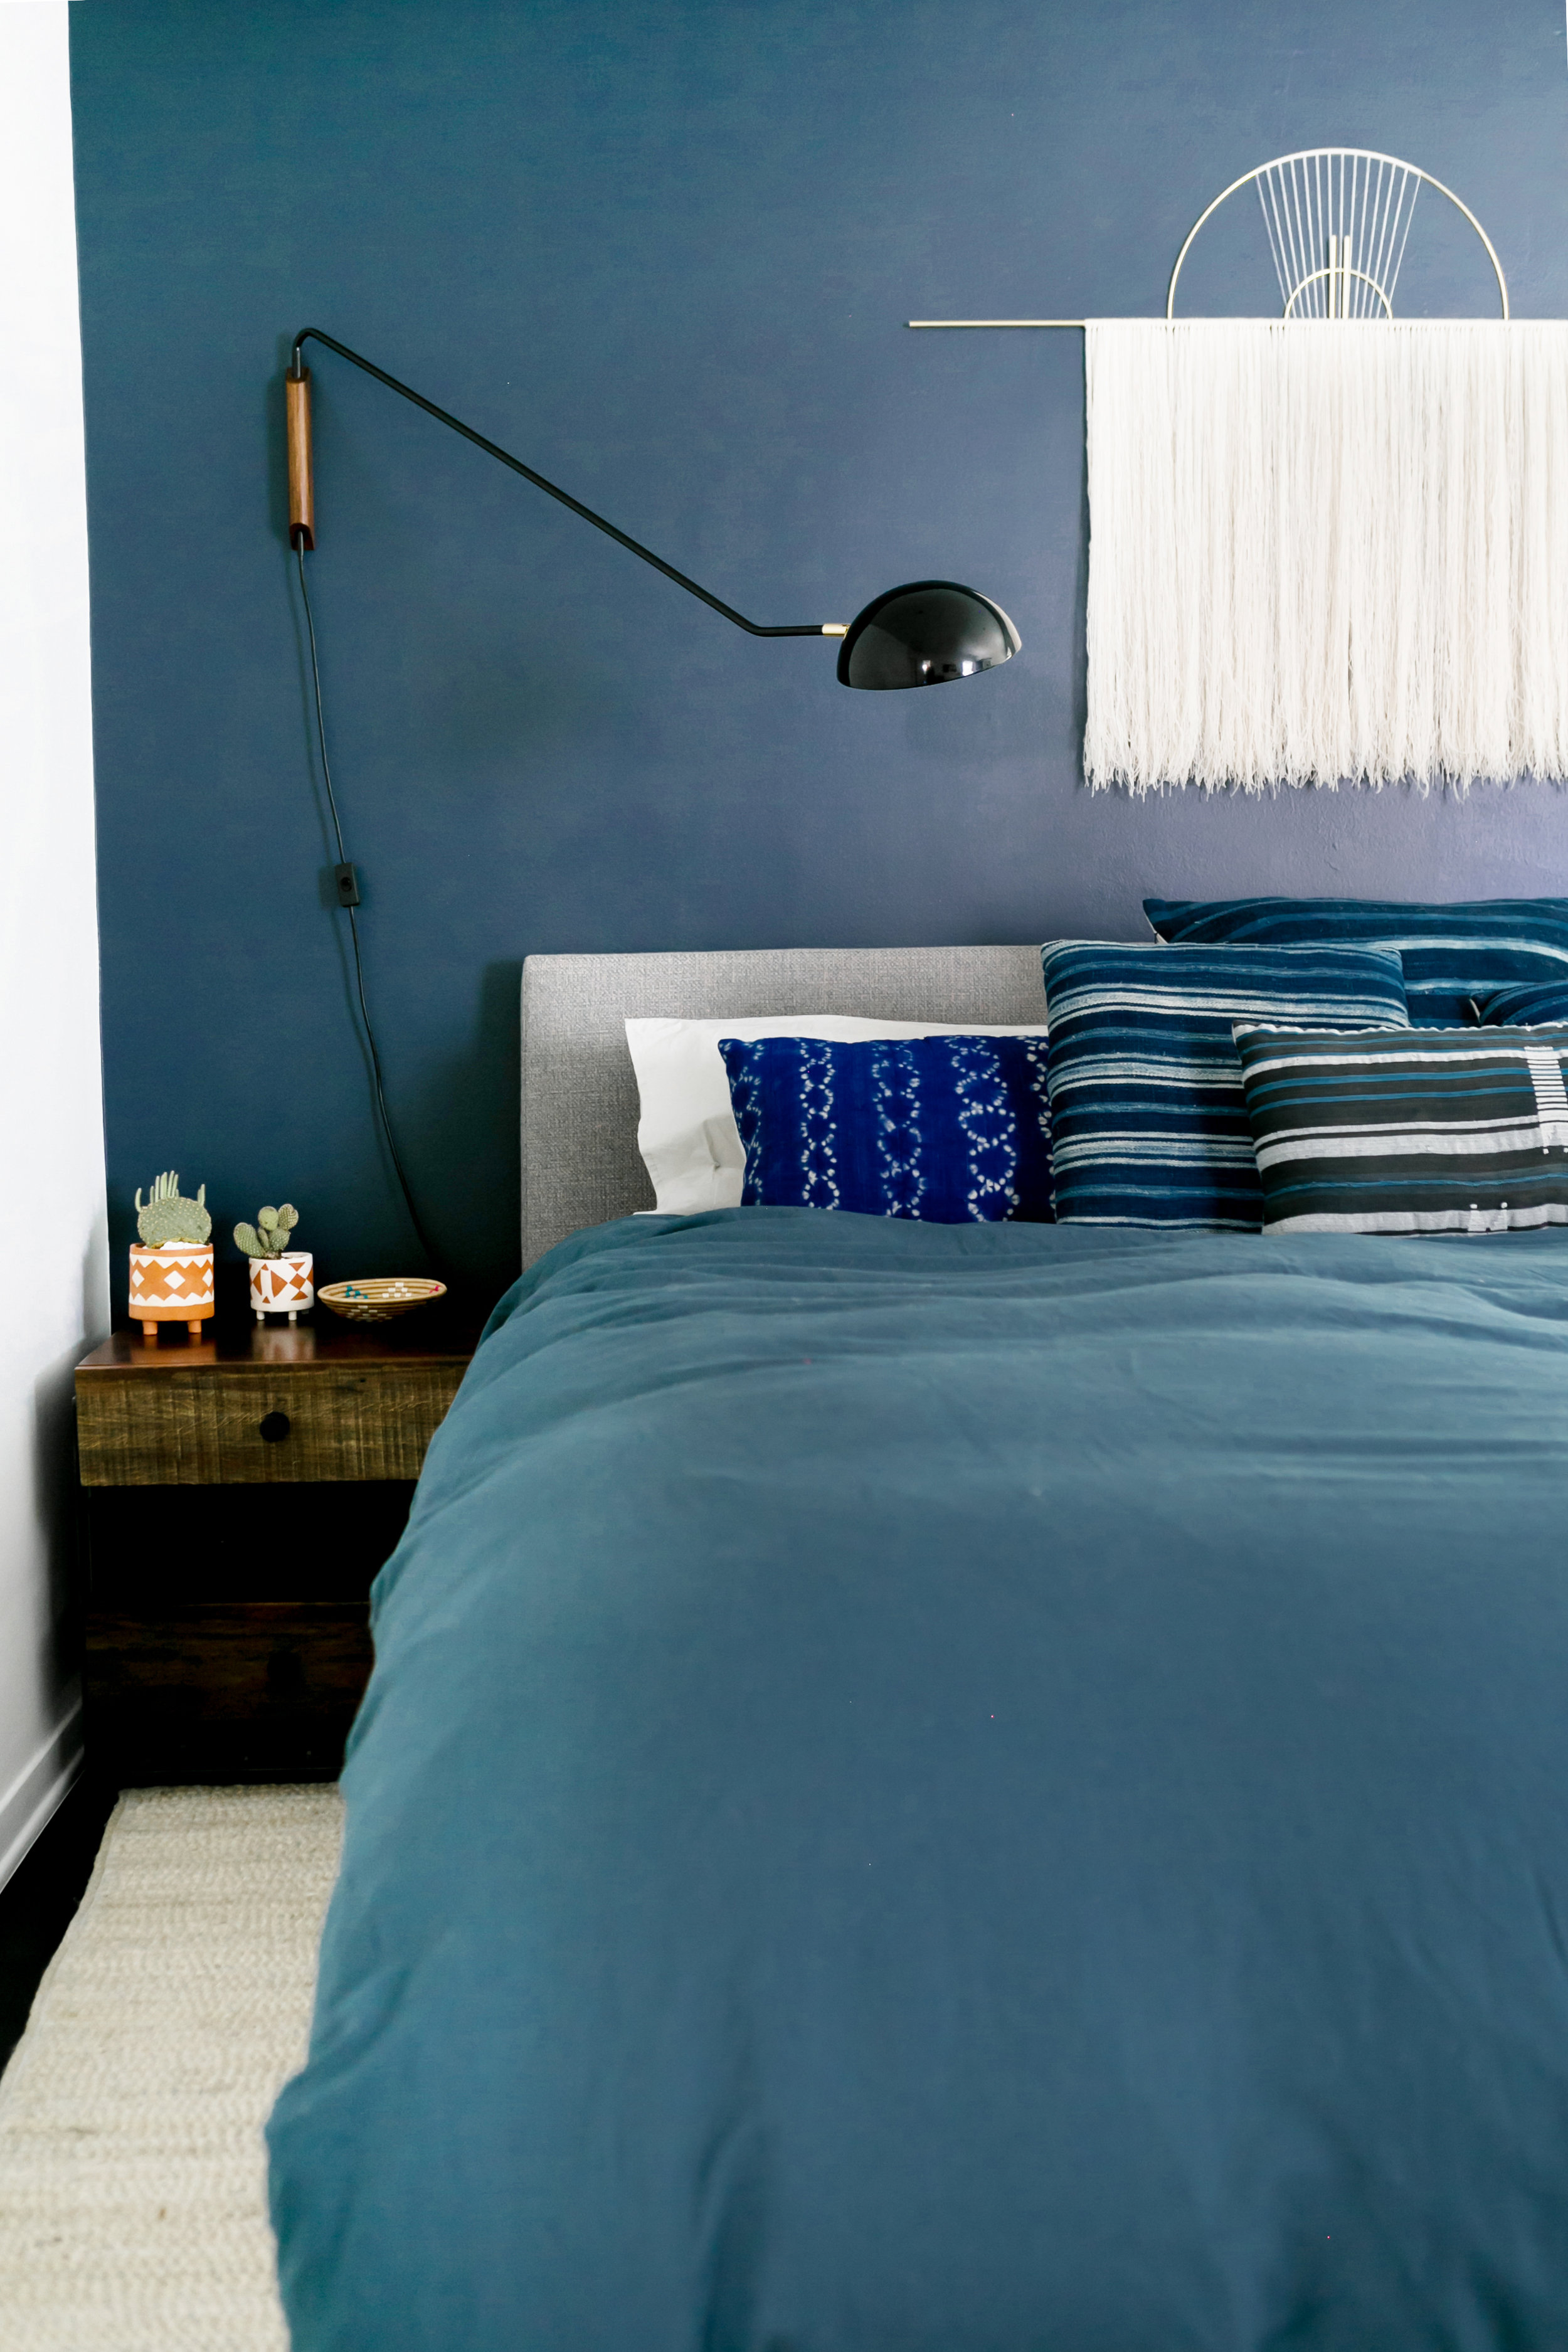 The Master Bedroom - My husband urged me to skew slightly masculine when it came to the master bedroom.We paired High Fashion Home's Hansen Bed and Hauser side table with navy and shibori accents including our wall,which is painted